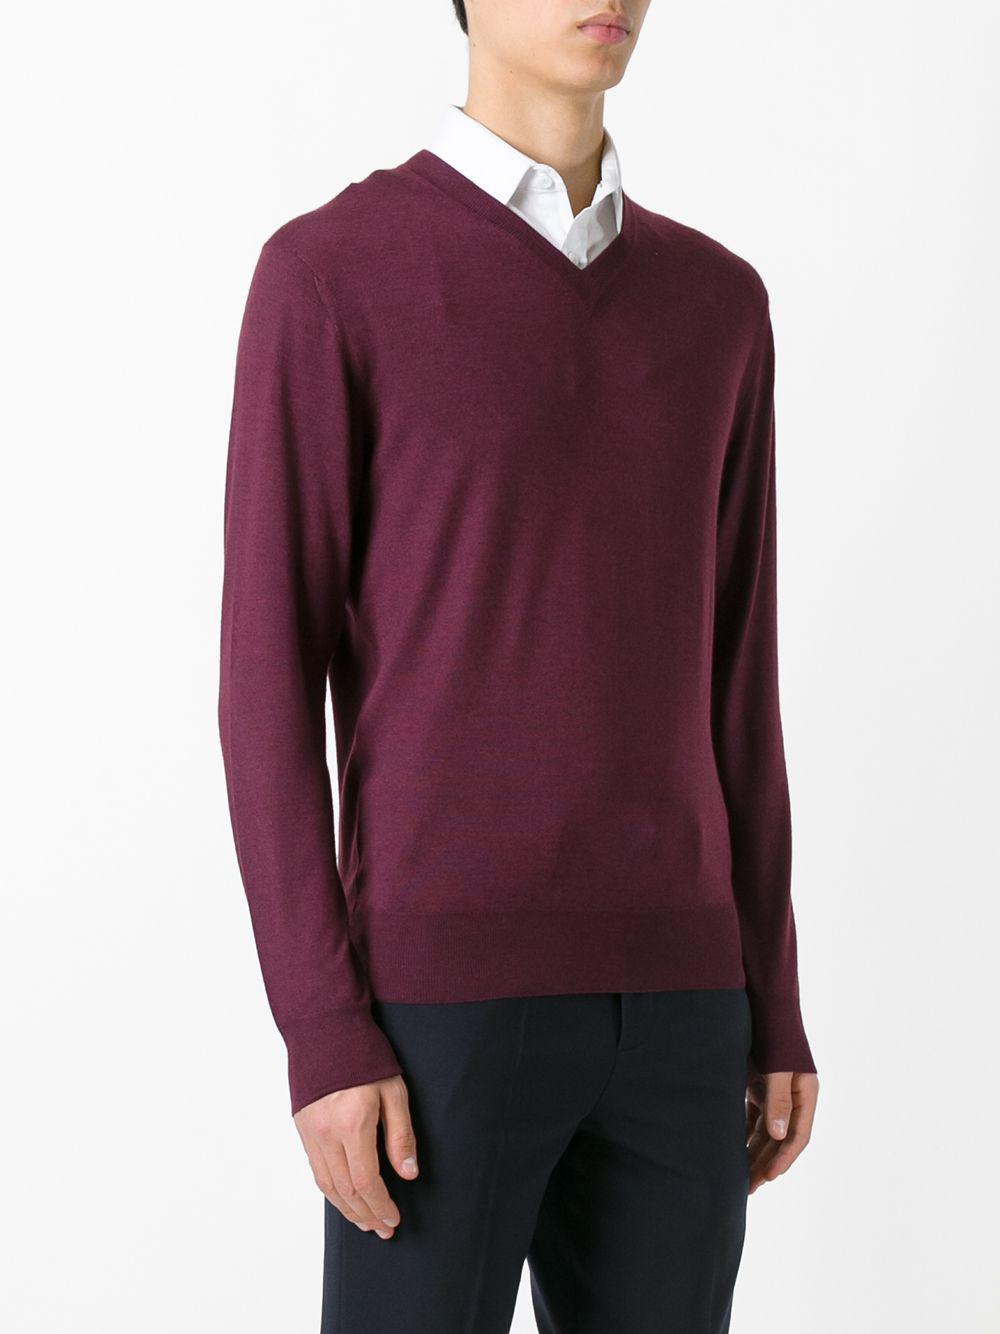 Cruciani Cashmere V Neck Sweater in Red for Men